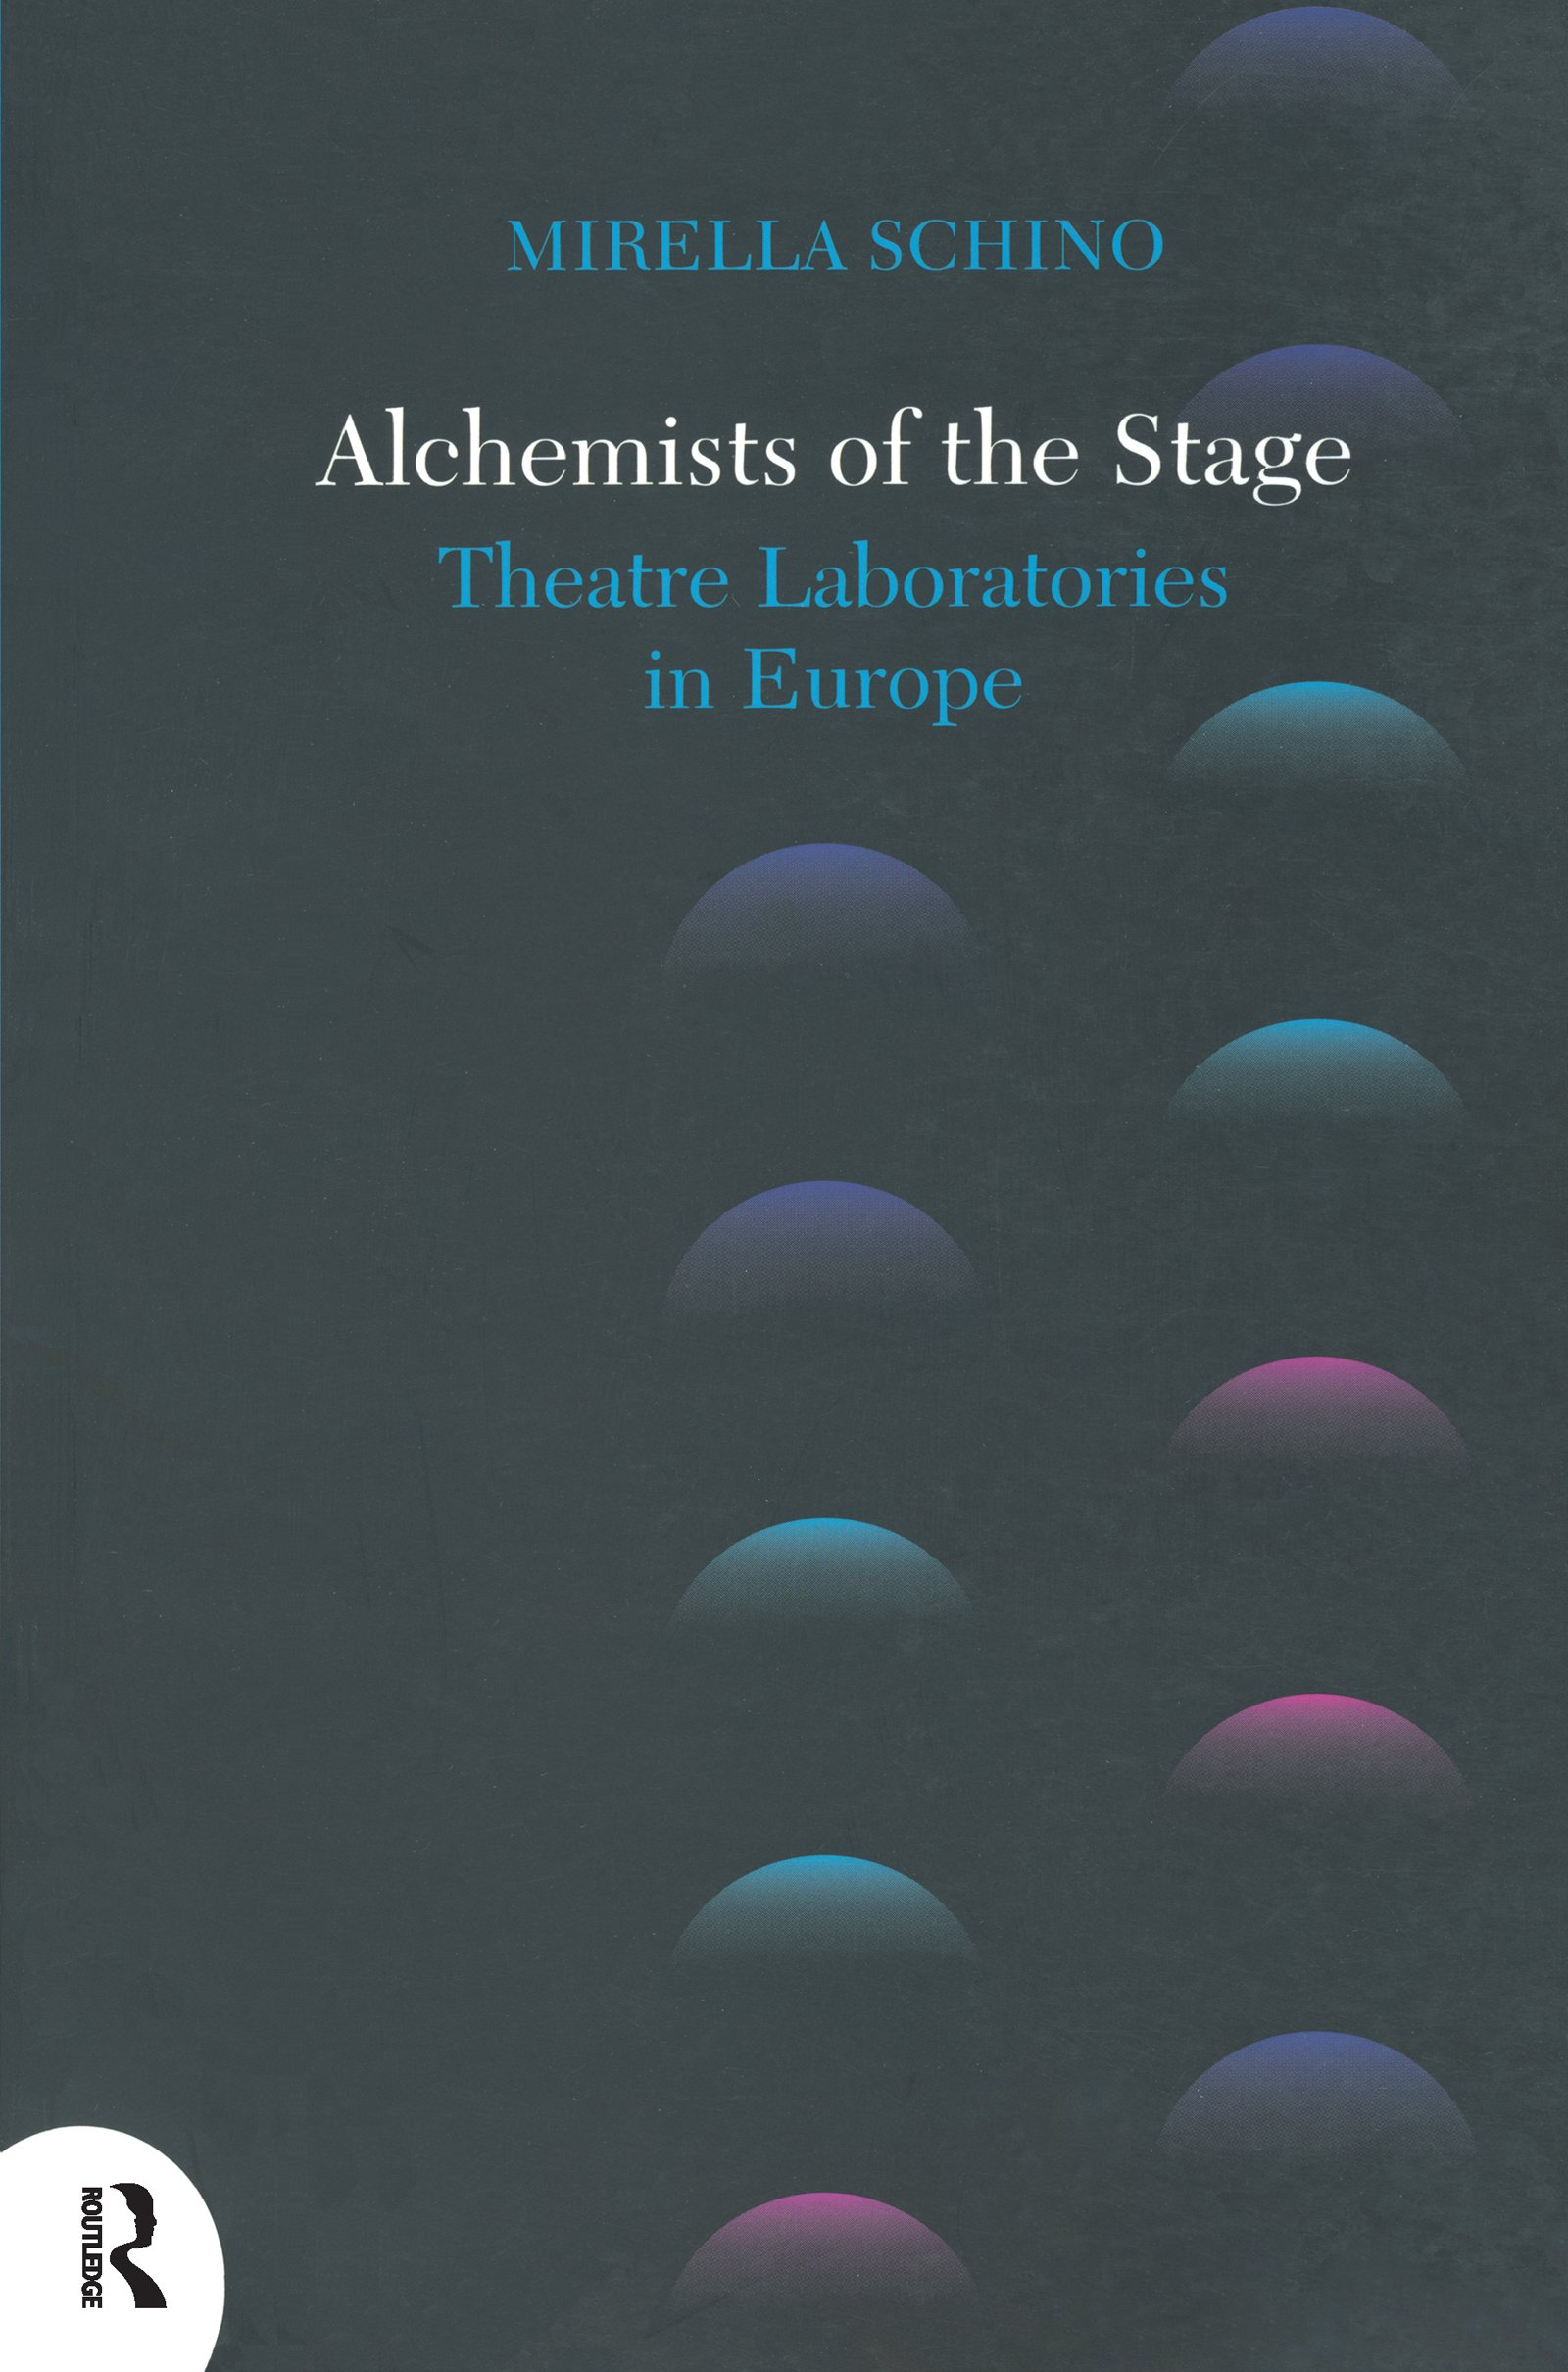 Alchemists of the Stage